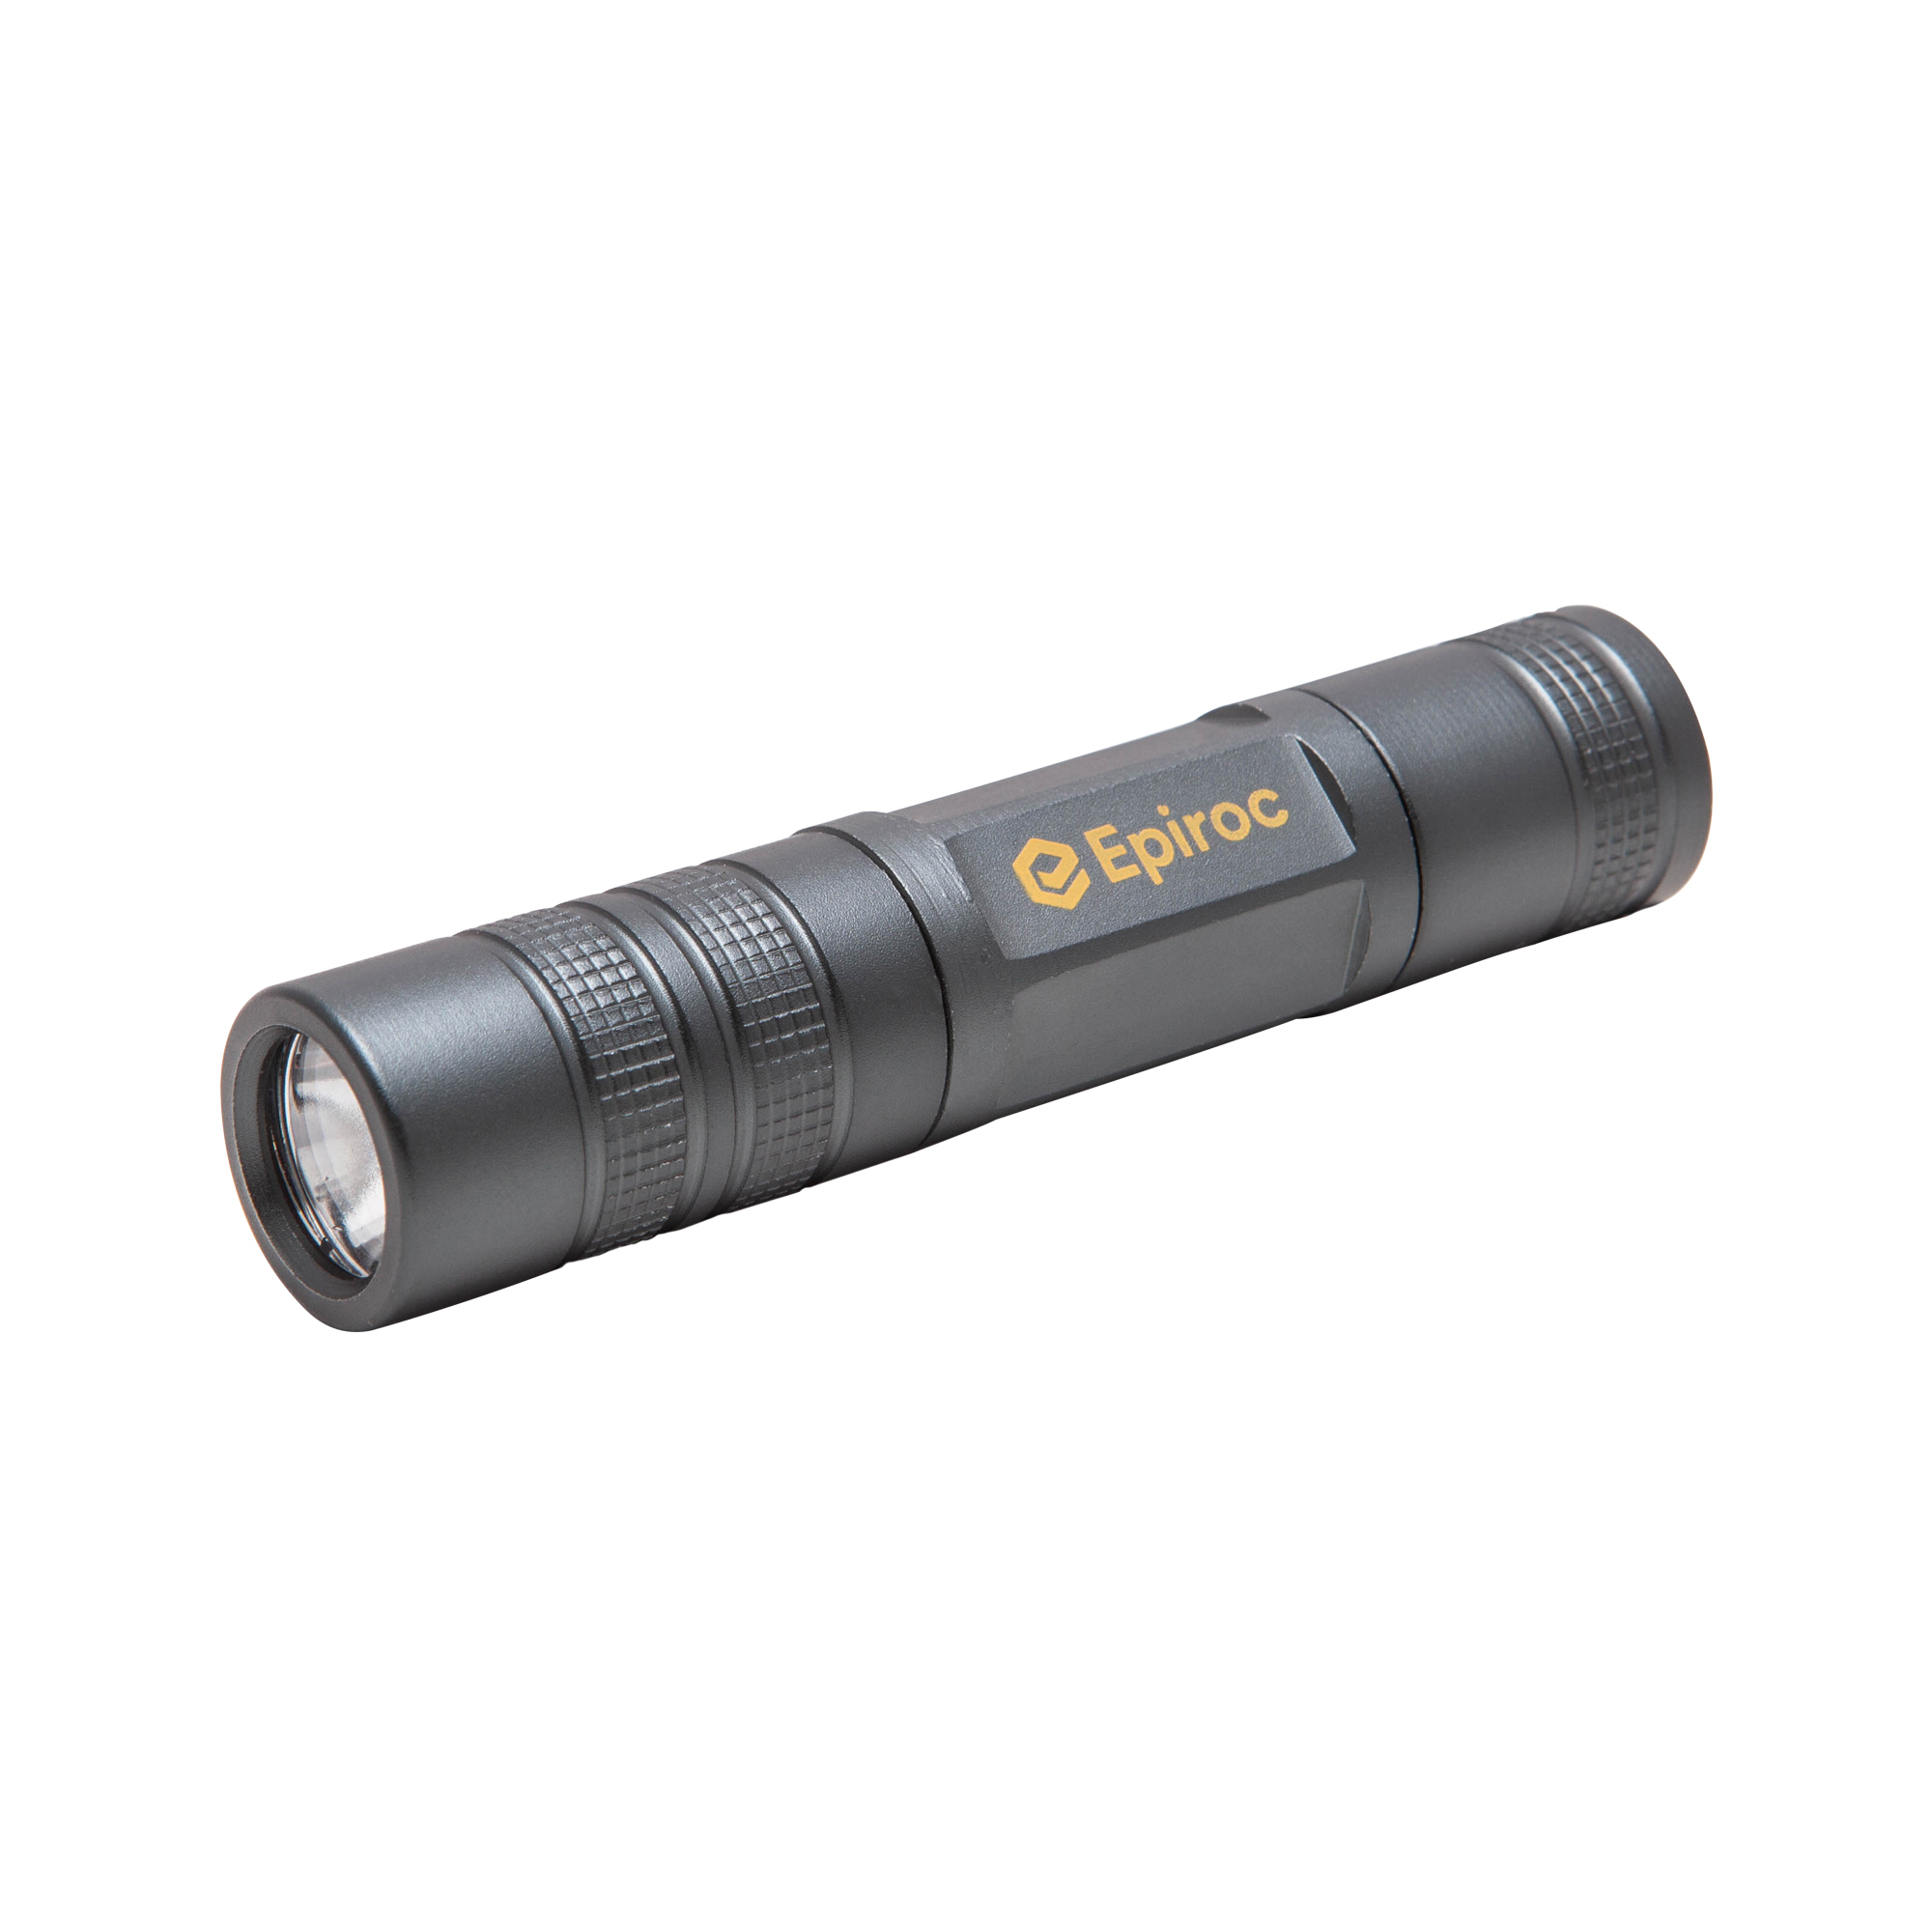 This aluminum LED flashlight provides an impressive bright light for its size. 